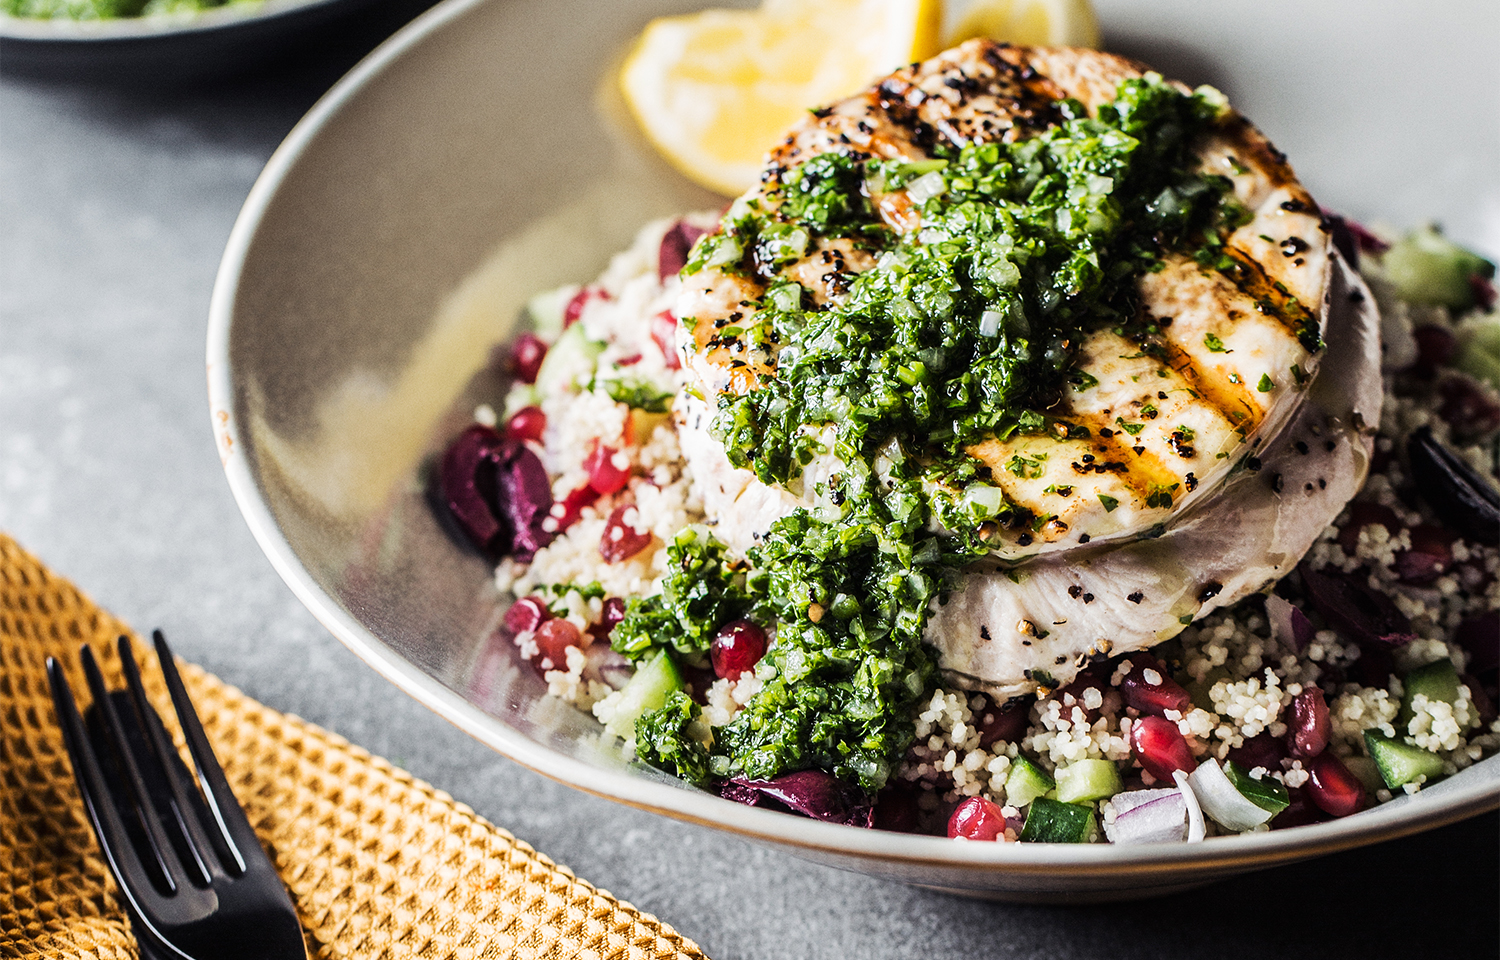 Grilled Turkey Steak with Chimichurri Salsa